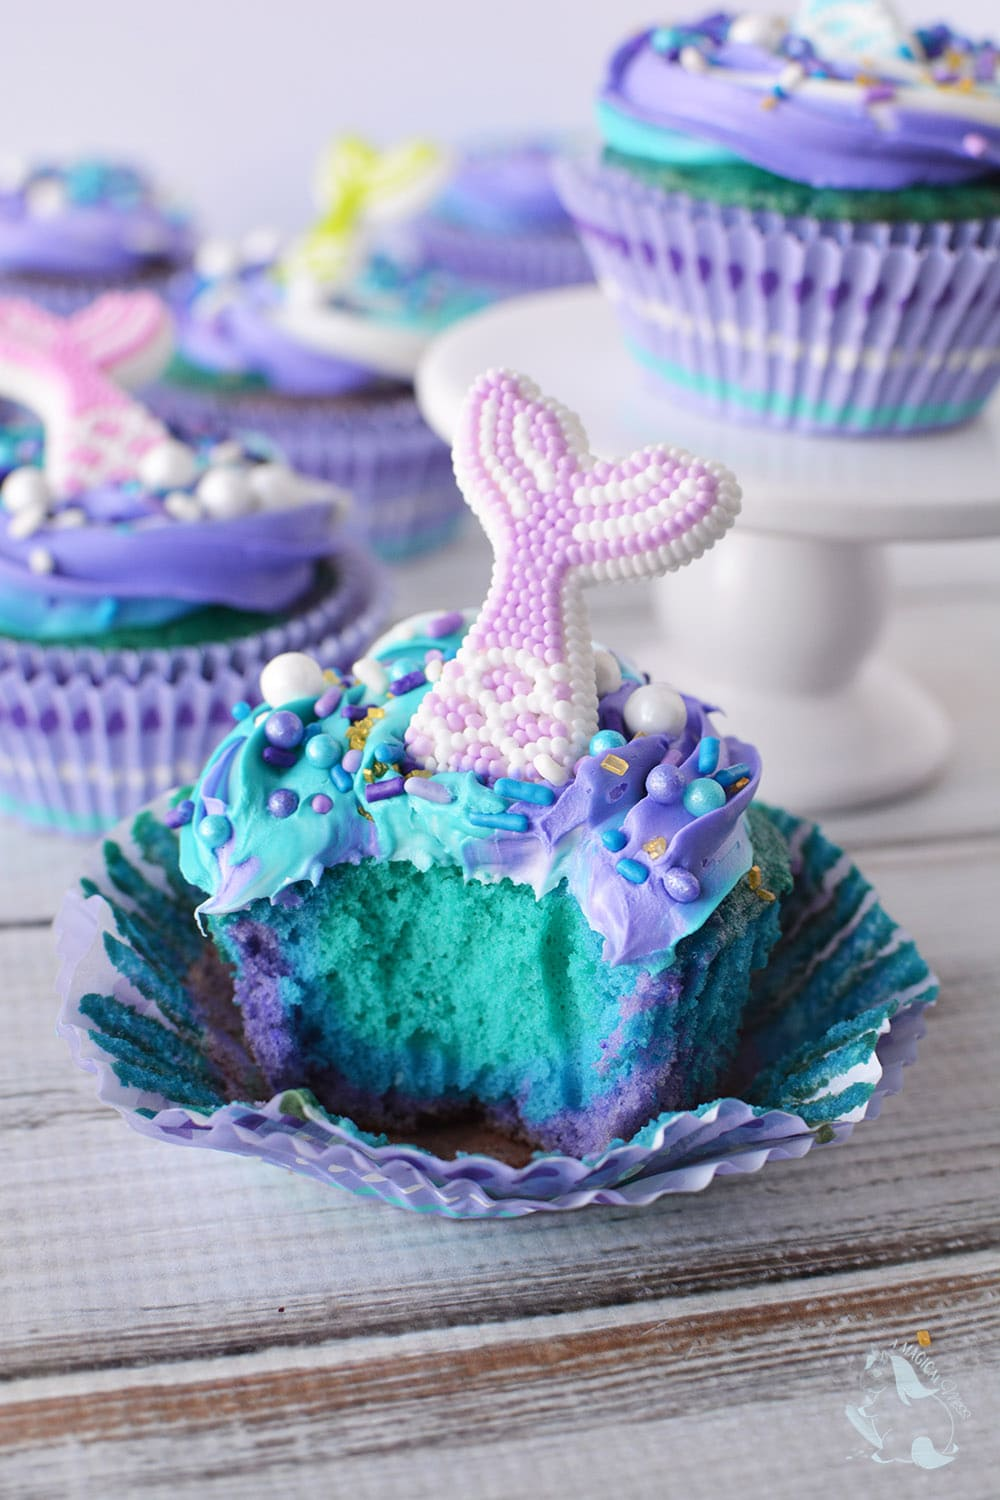 Blue and purple cupcake with a bite taken out.